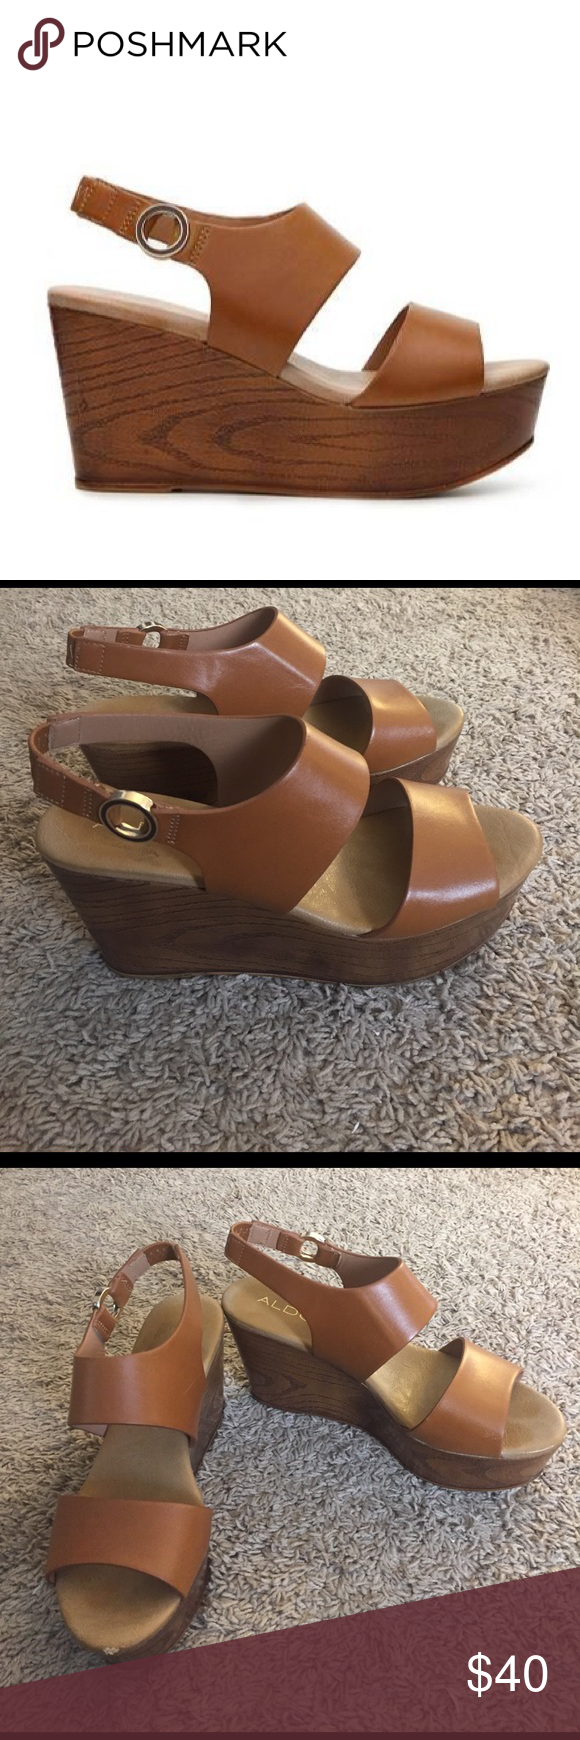 906a06c2ab0a Aldo Piaclya Wedge Sandal Only worn once